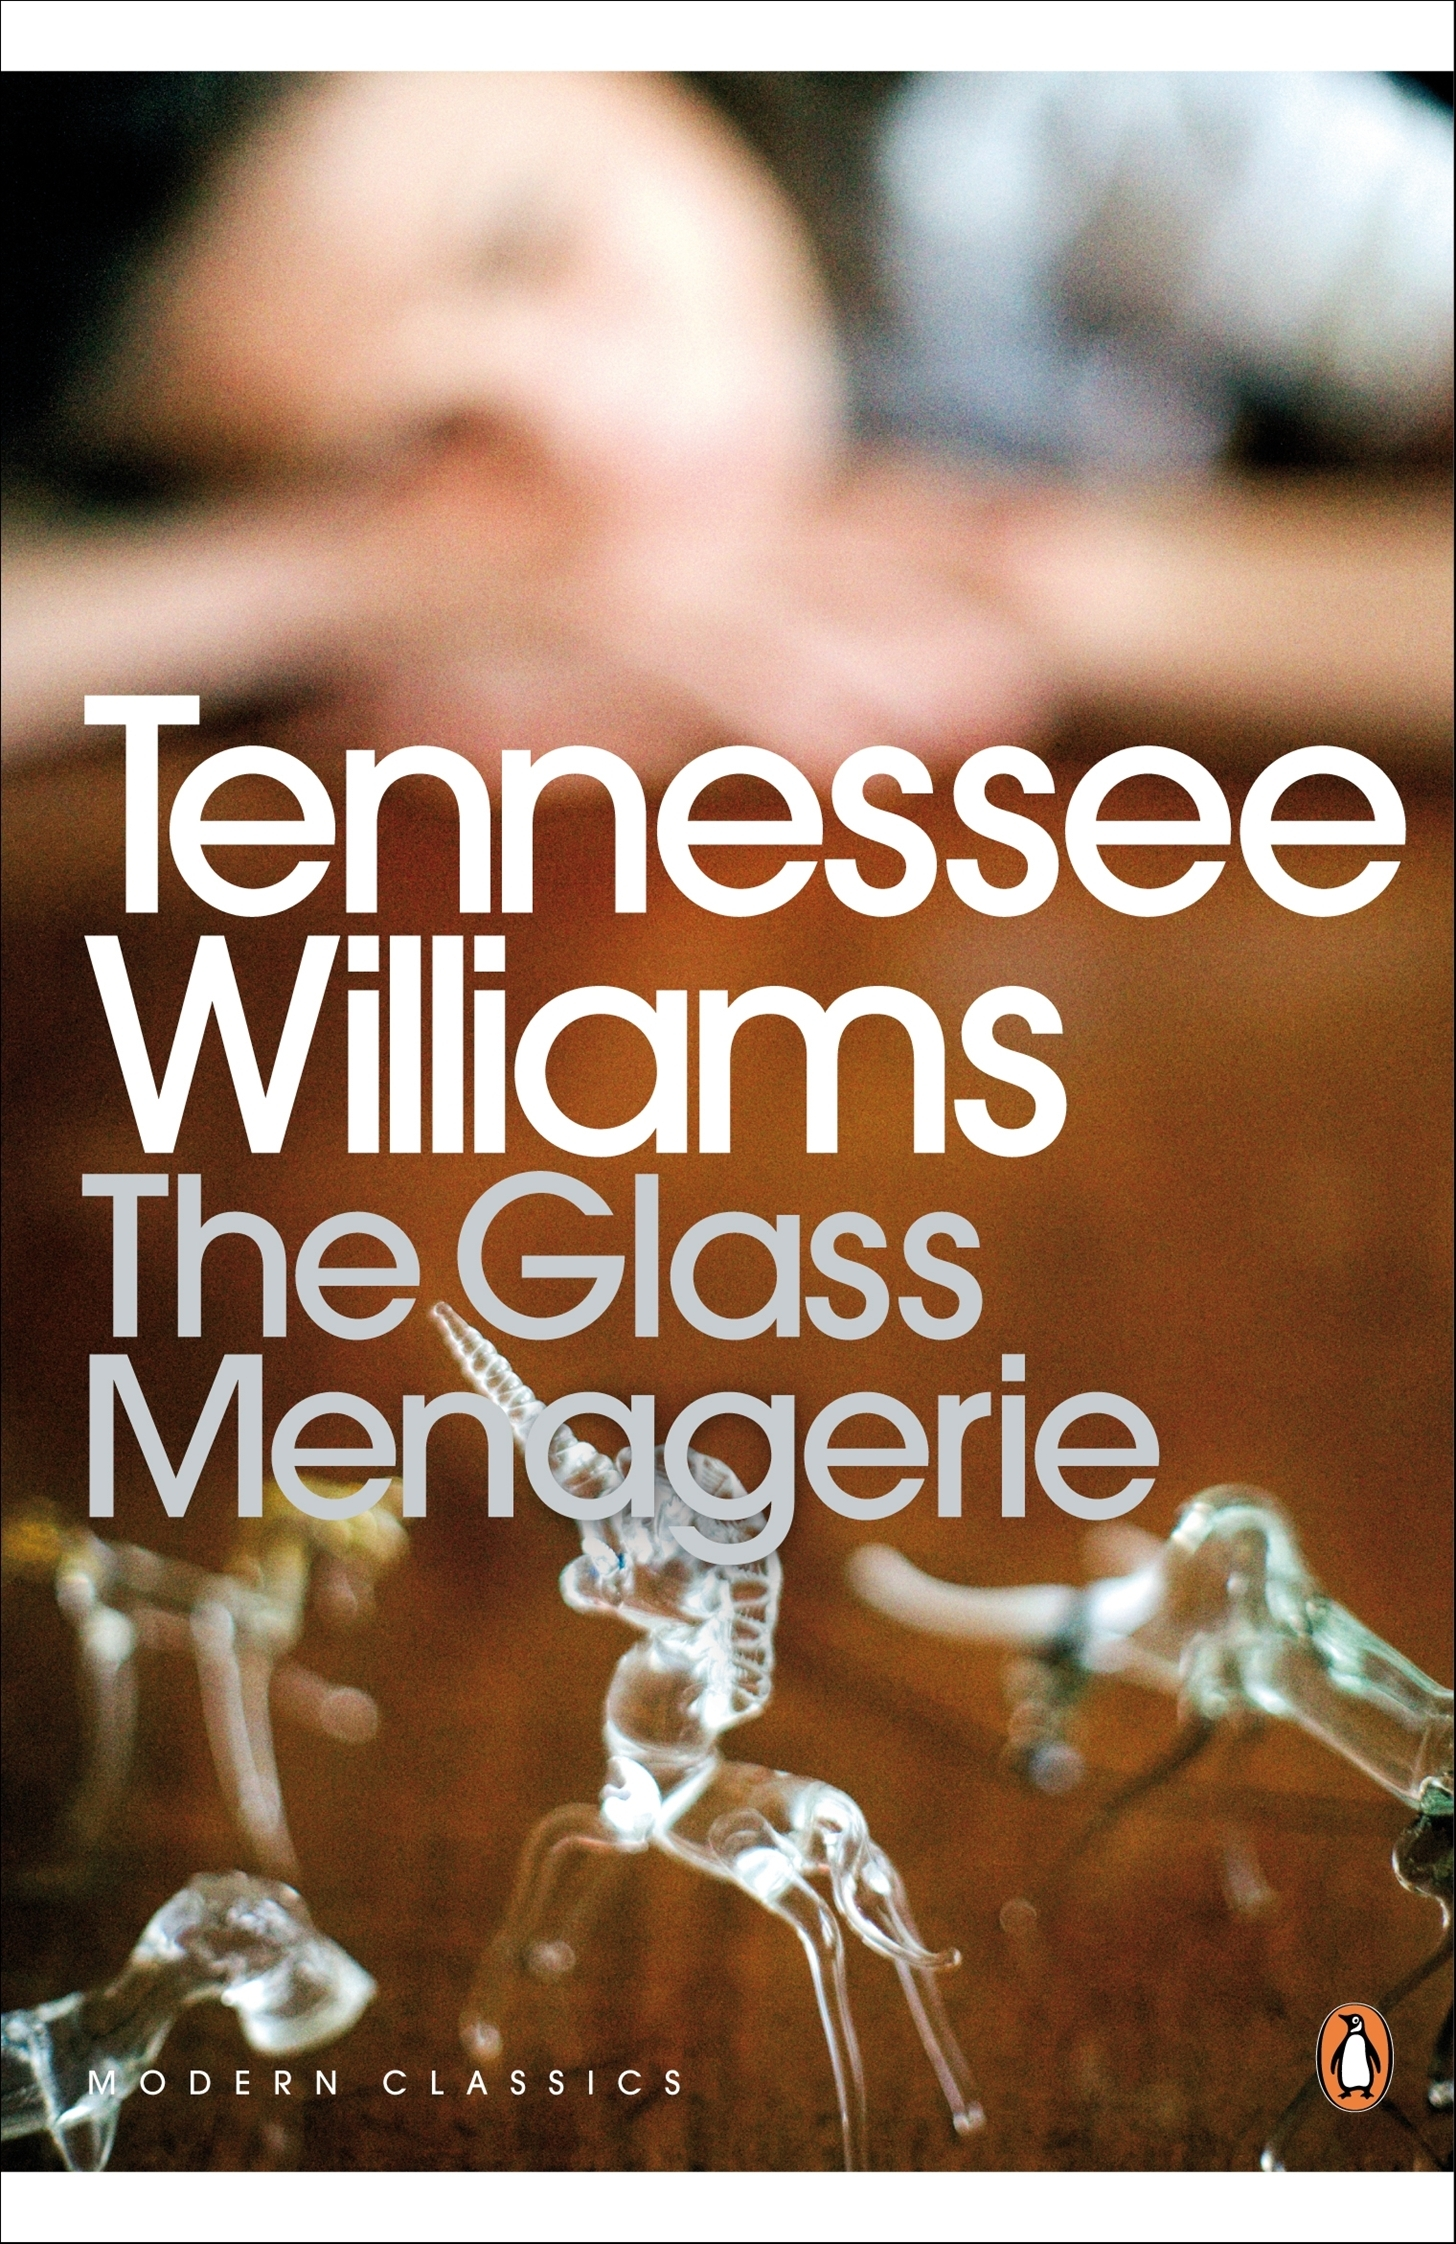 the need to be free in tennessse williams the glass menagerie The glass menagerie tennessee williams buy share buy home literature notes the glass menagerie essay questions table of contents all subjects play summary about the glass menagerie character list summary and analysis scene 1 scene 2.